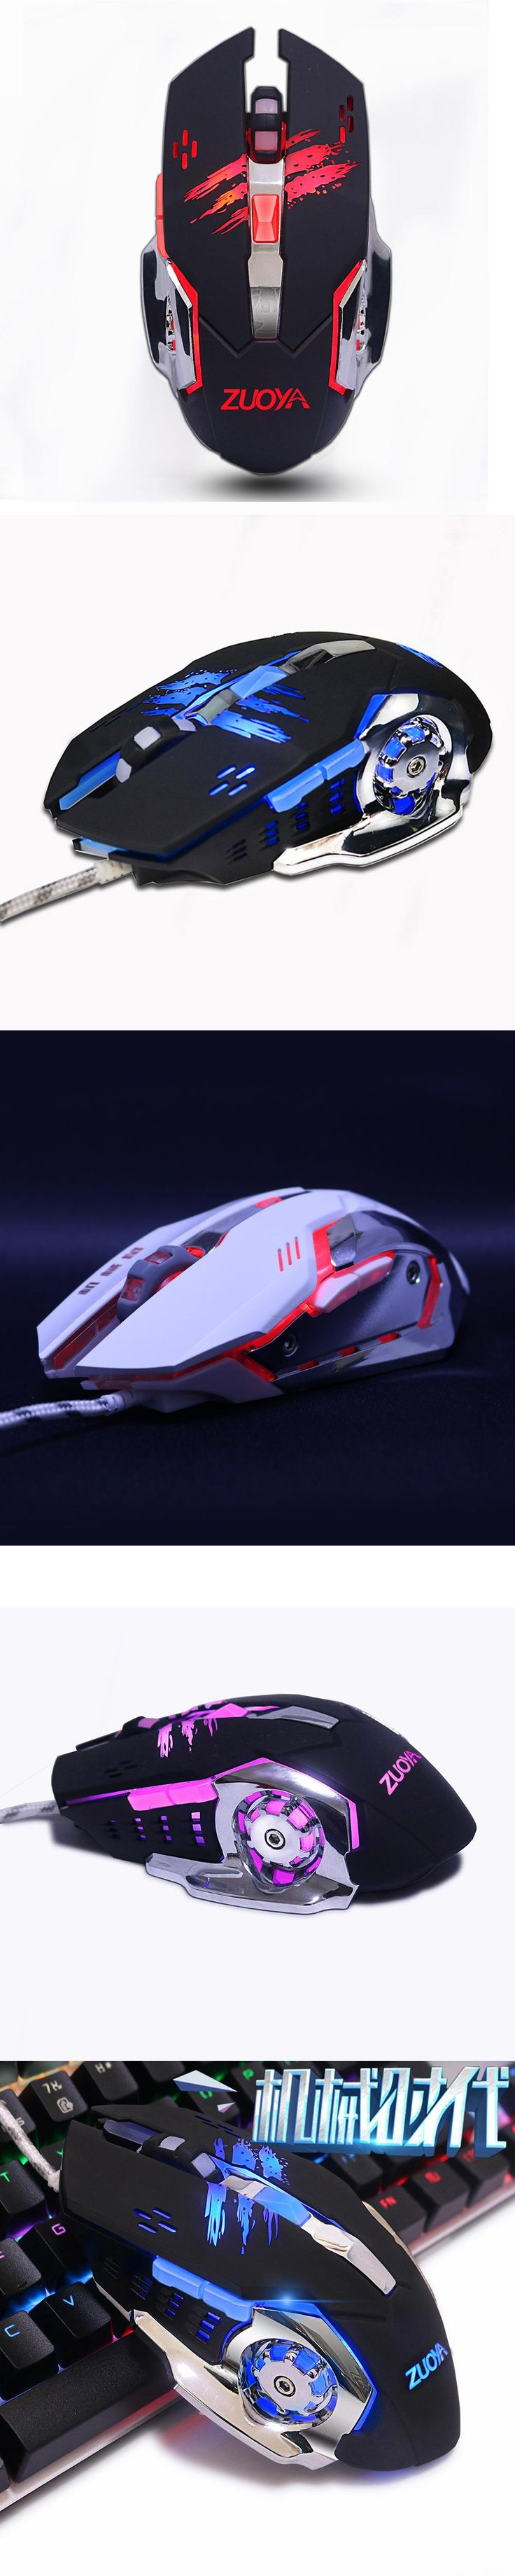 Gaming Mouse mouse 6 Buttons Adjustable 3200DPI Optical Macro Programming USB game wired Mice for for Computer Desktop Laptop